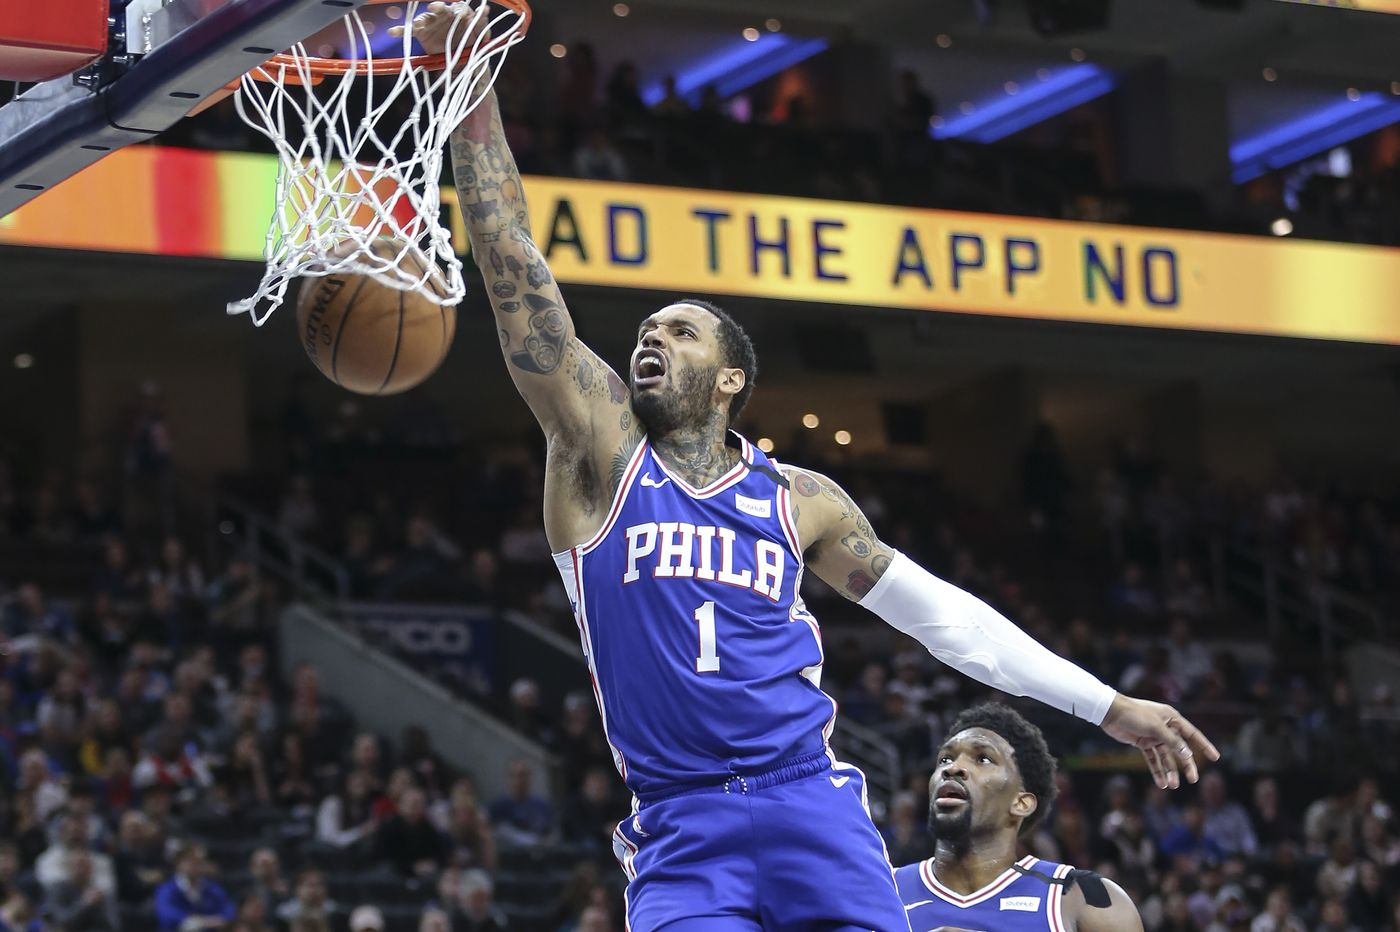 Mike Scott, Glenn Robinson III remain sidelined for Sixers; Kyle O'Quinn eligible to play after Tuesday's negative COVID-19 test